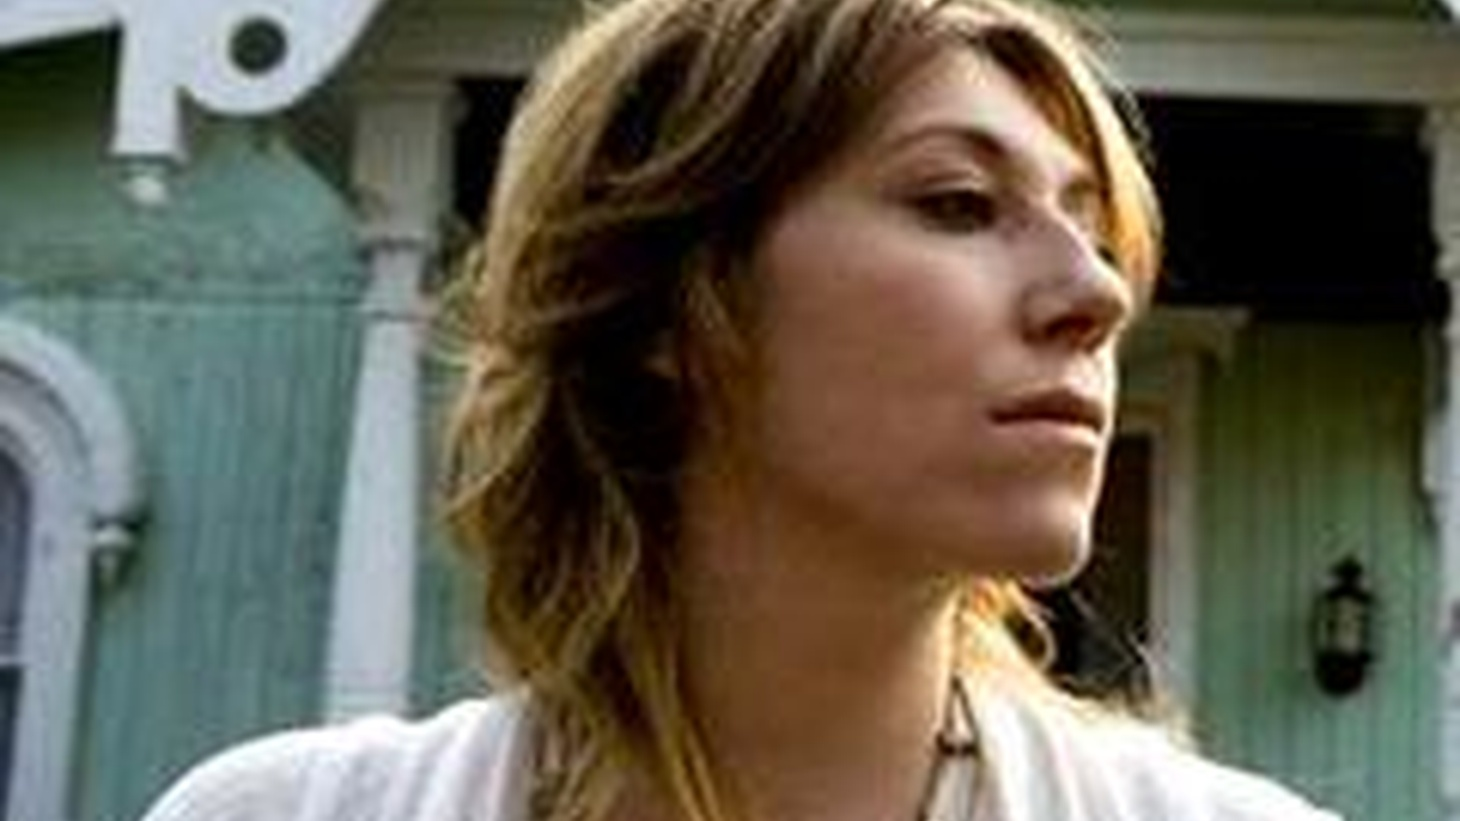 Martha Wainwright brings her band to perform a batch of new songs on Morning Becomes Eclectic at 11:15am.